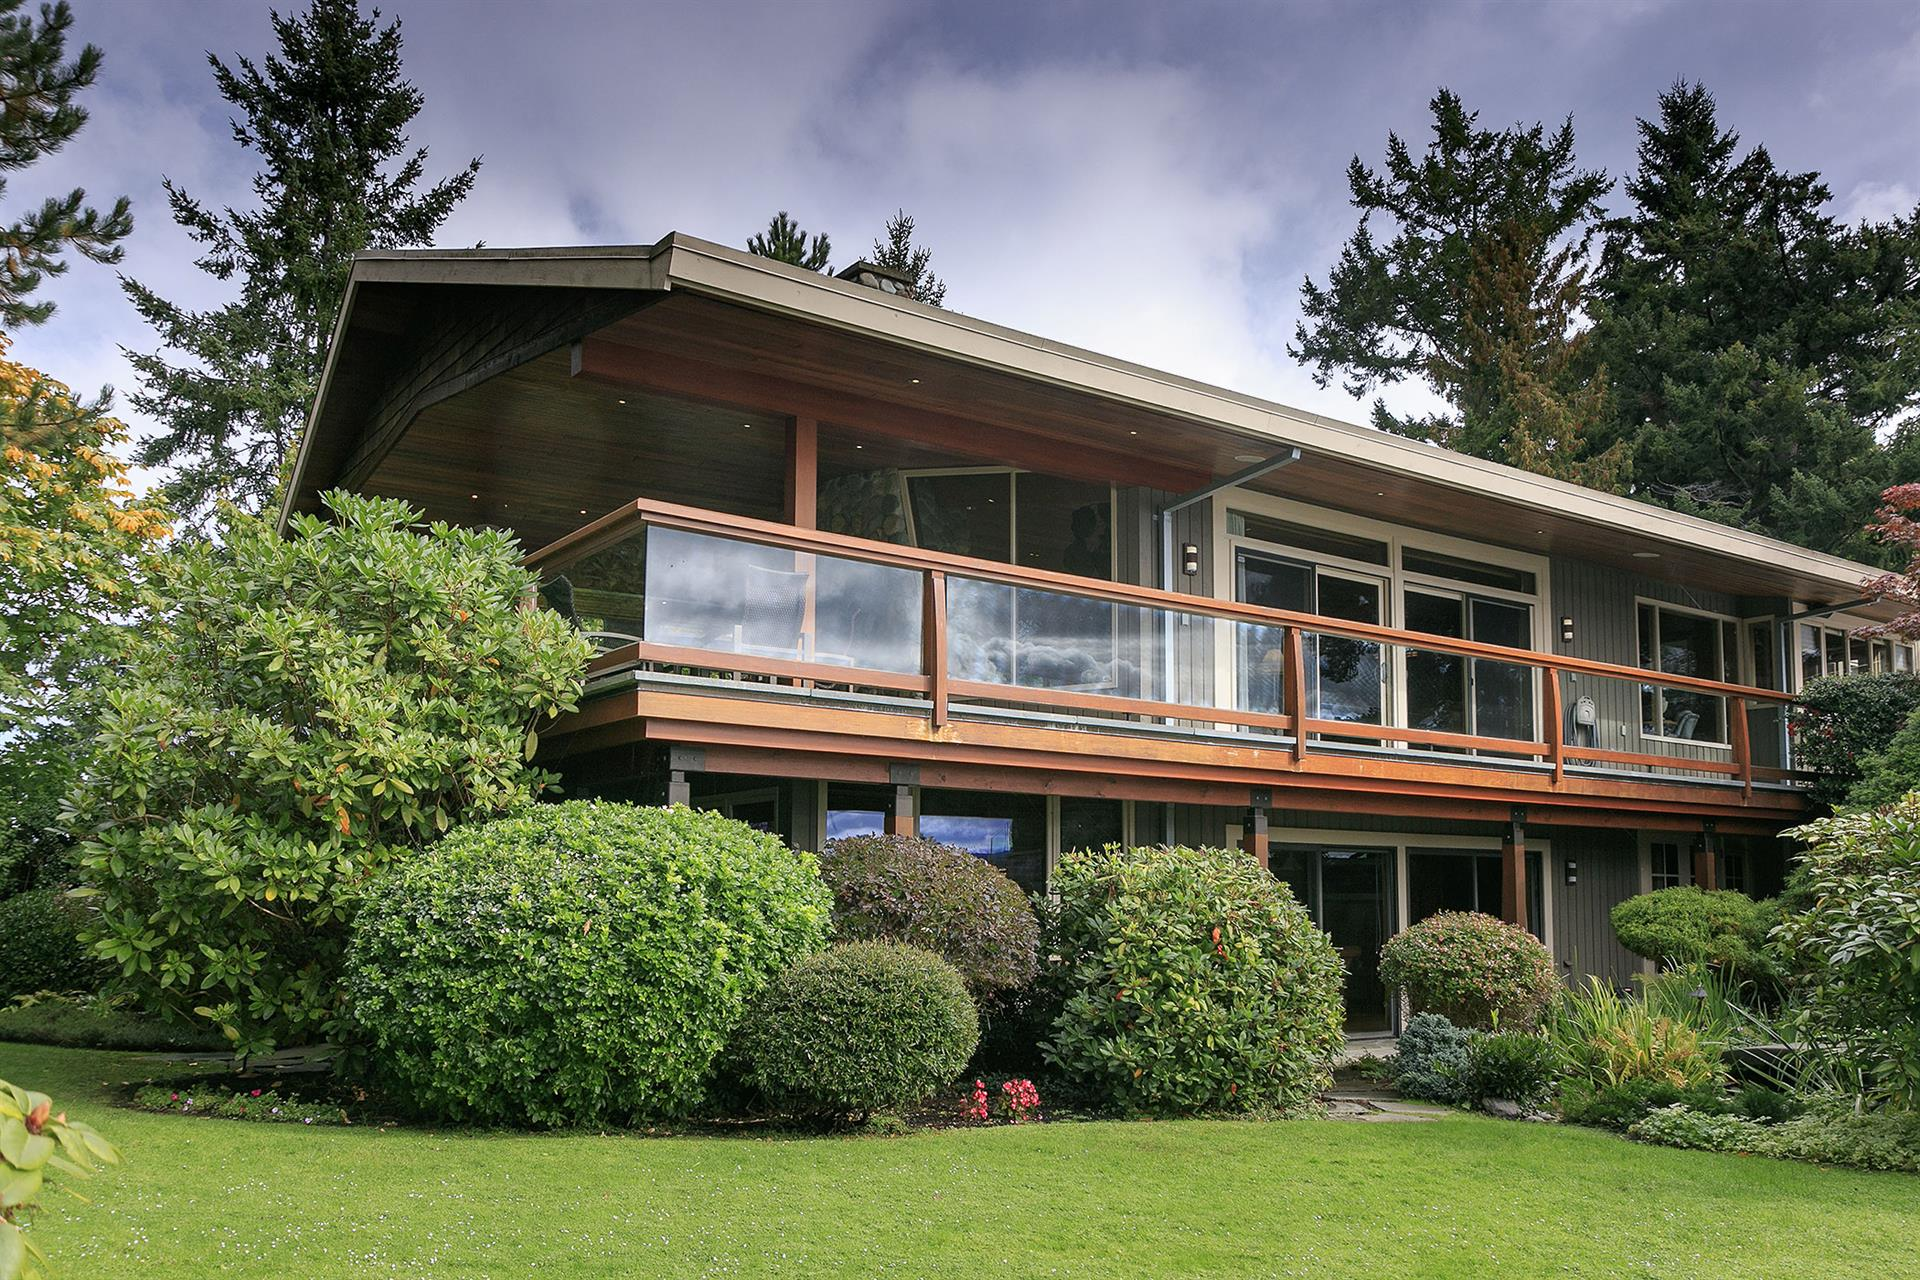 Additional photo for property listing at 279 Coal Point Ln North Saanich, Colombie-Britannique,Canada